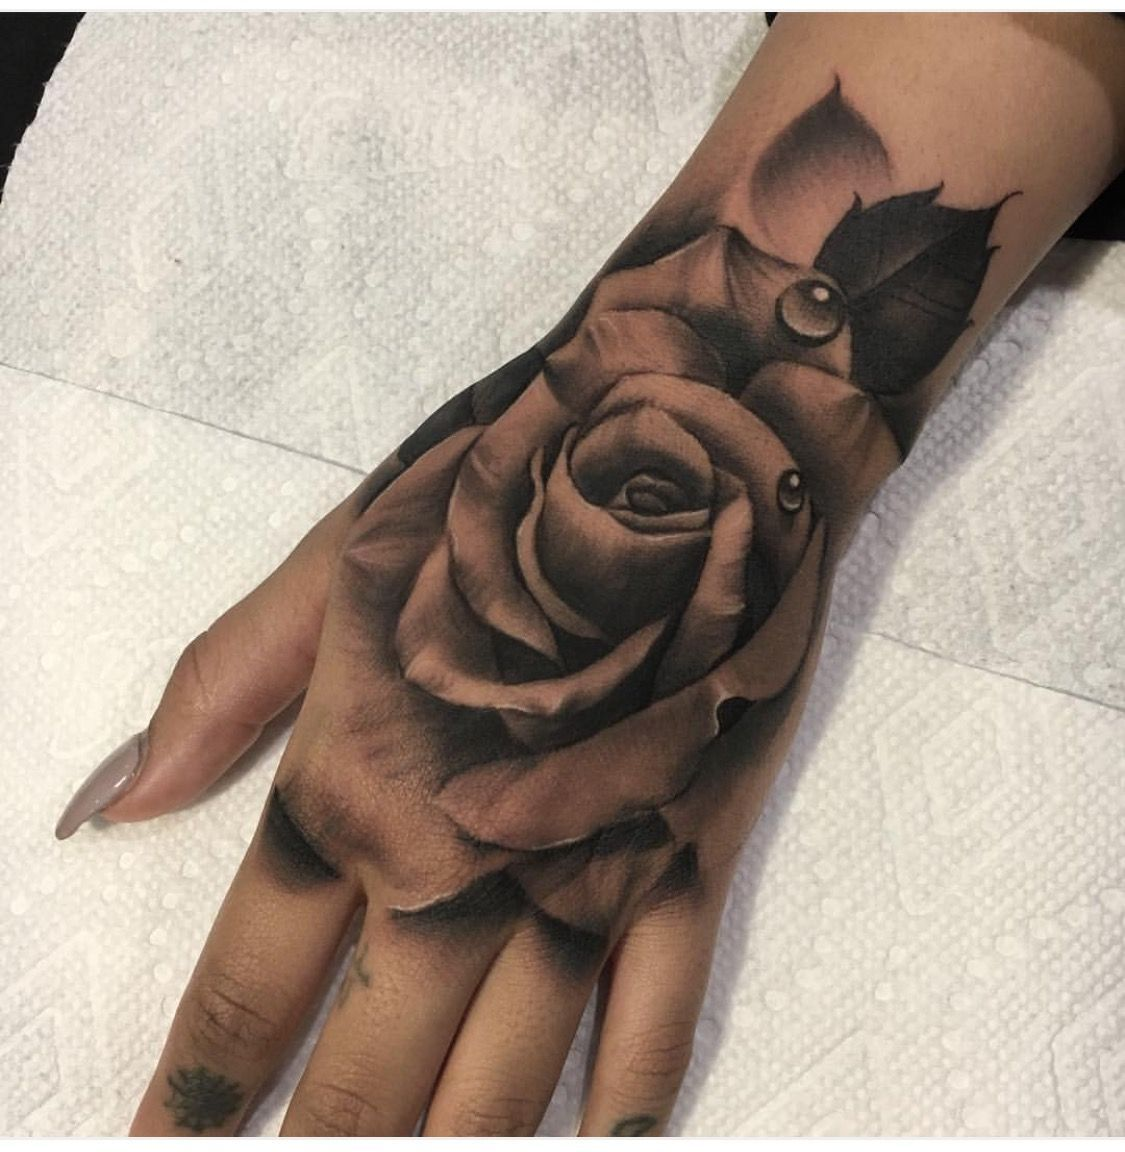 Must Read Hand Tattoos For Women Get Your Cool Ideas Designs Tips Tattoo Designs T Tattoo Design For Hand Hand Tattoos For Women Tattoos For Women Small